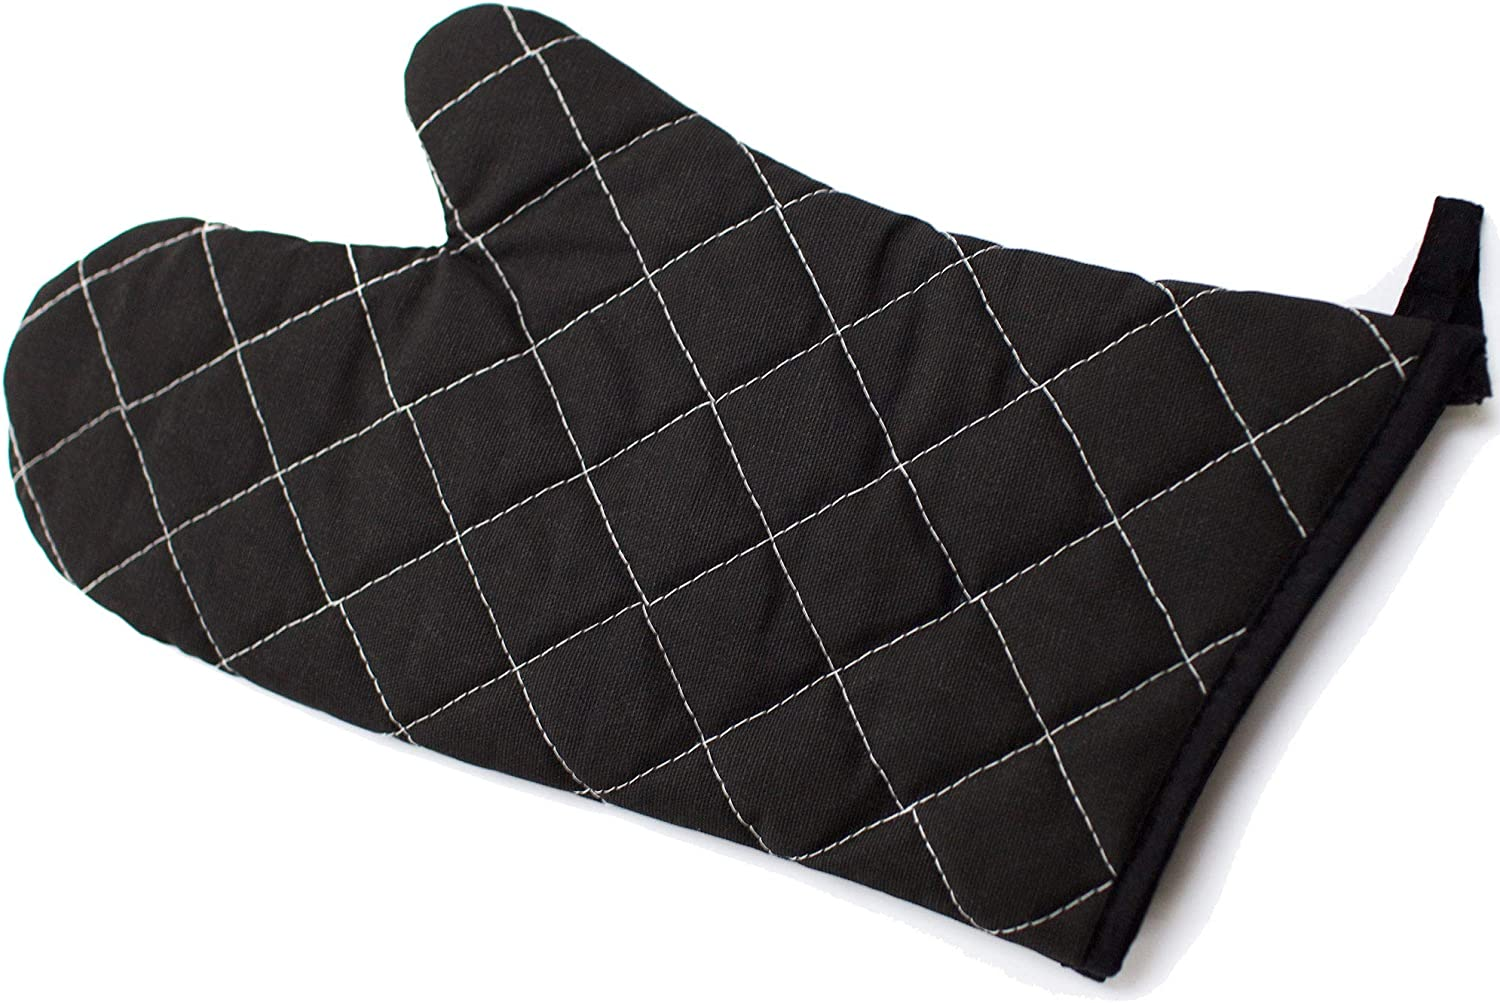 MANNKITCHEN Extra Large Oven Mitt - Heavy Duty Quilted Cotton with Flame Resistant Coating - Professional Oven Mitts for Commercial Kitchen